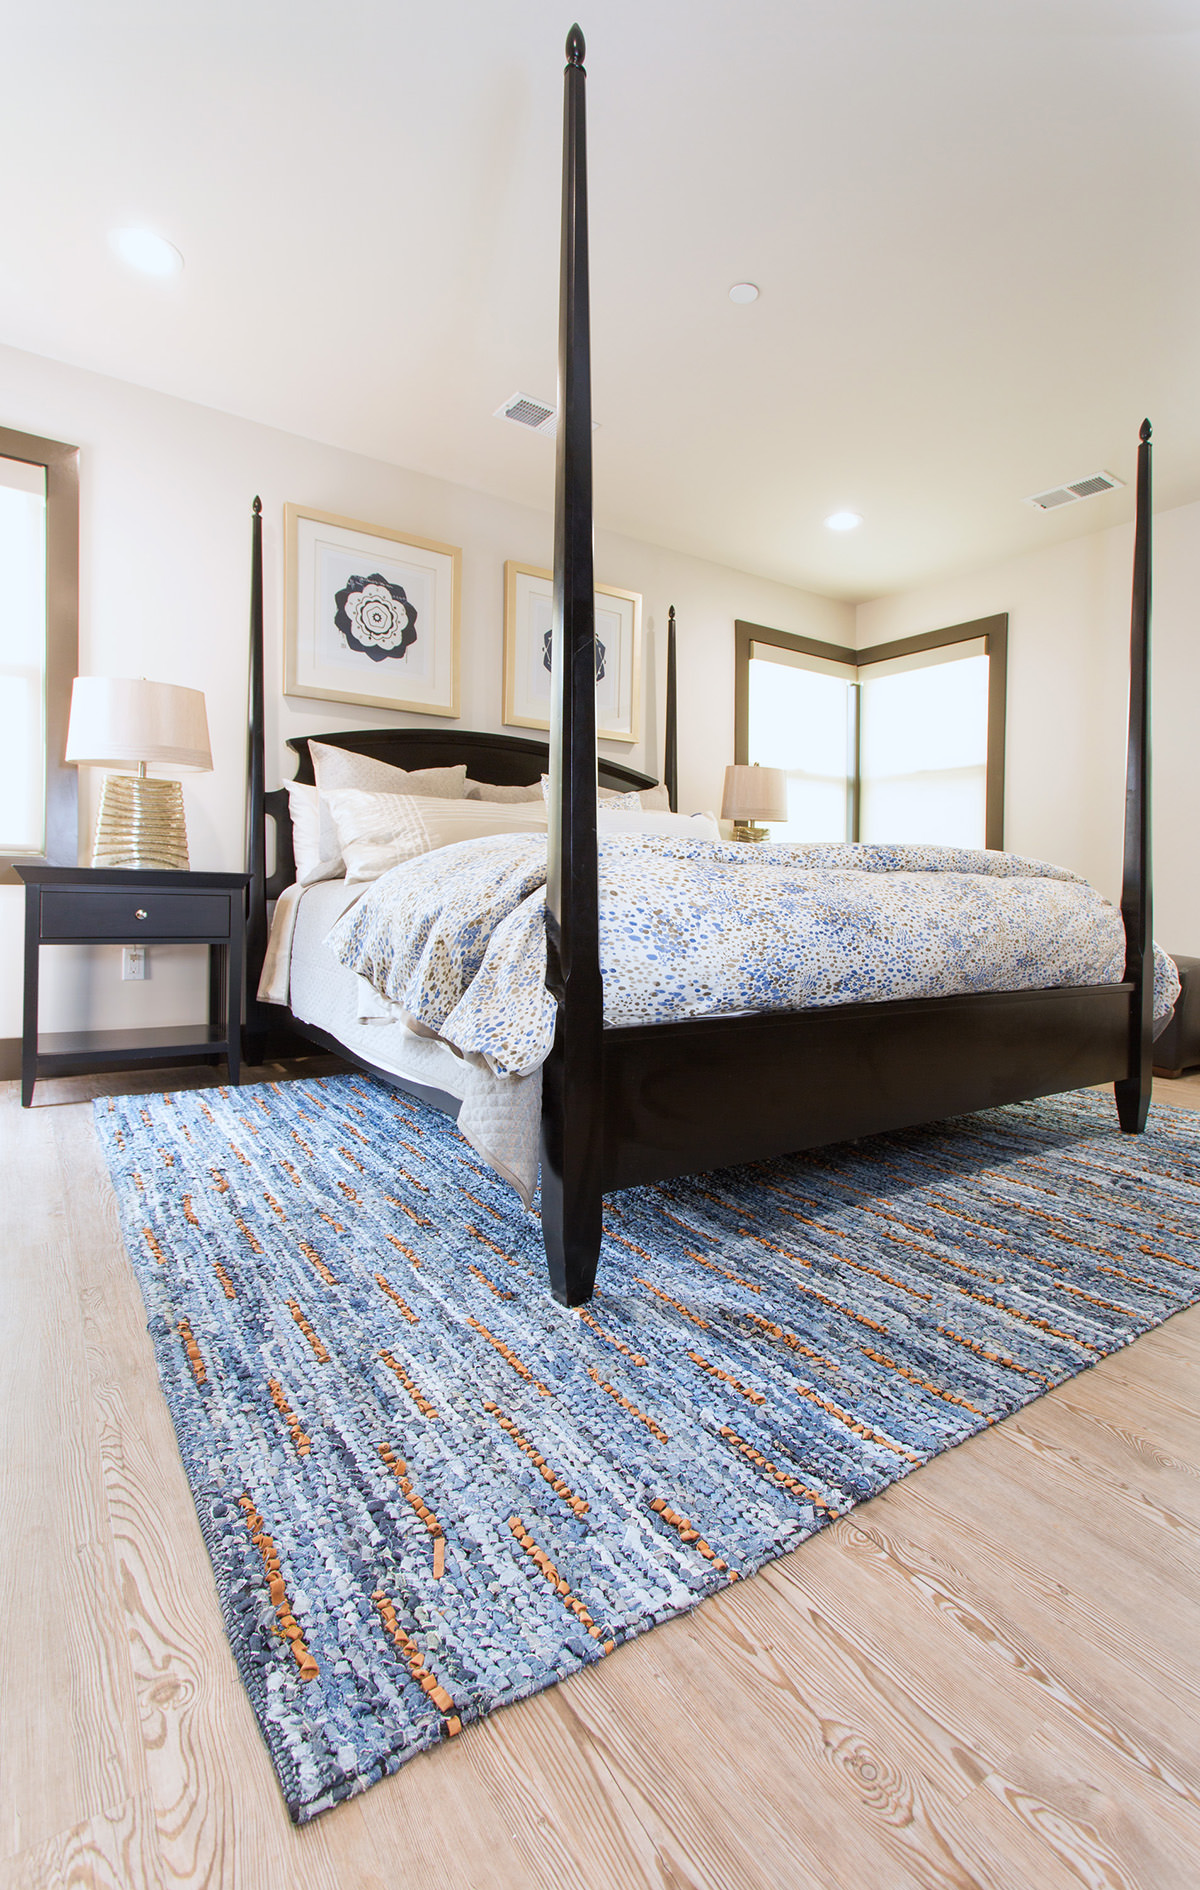 guest-bedroom-interior-design-los-altos-california-ktj-design-co-3.jpg